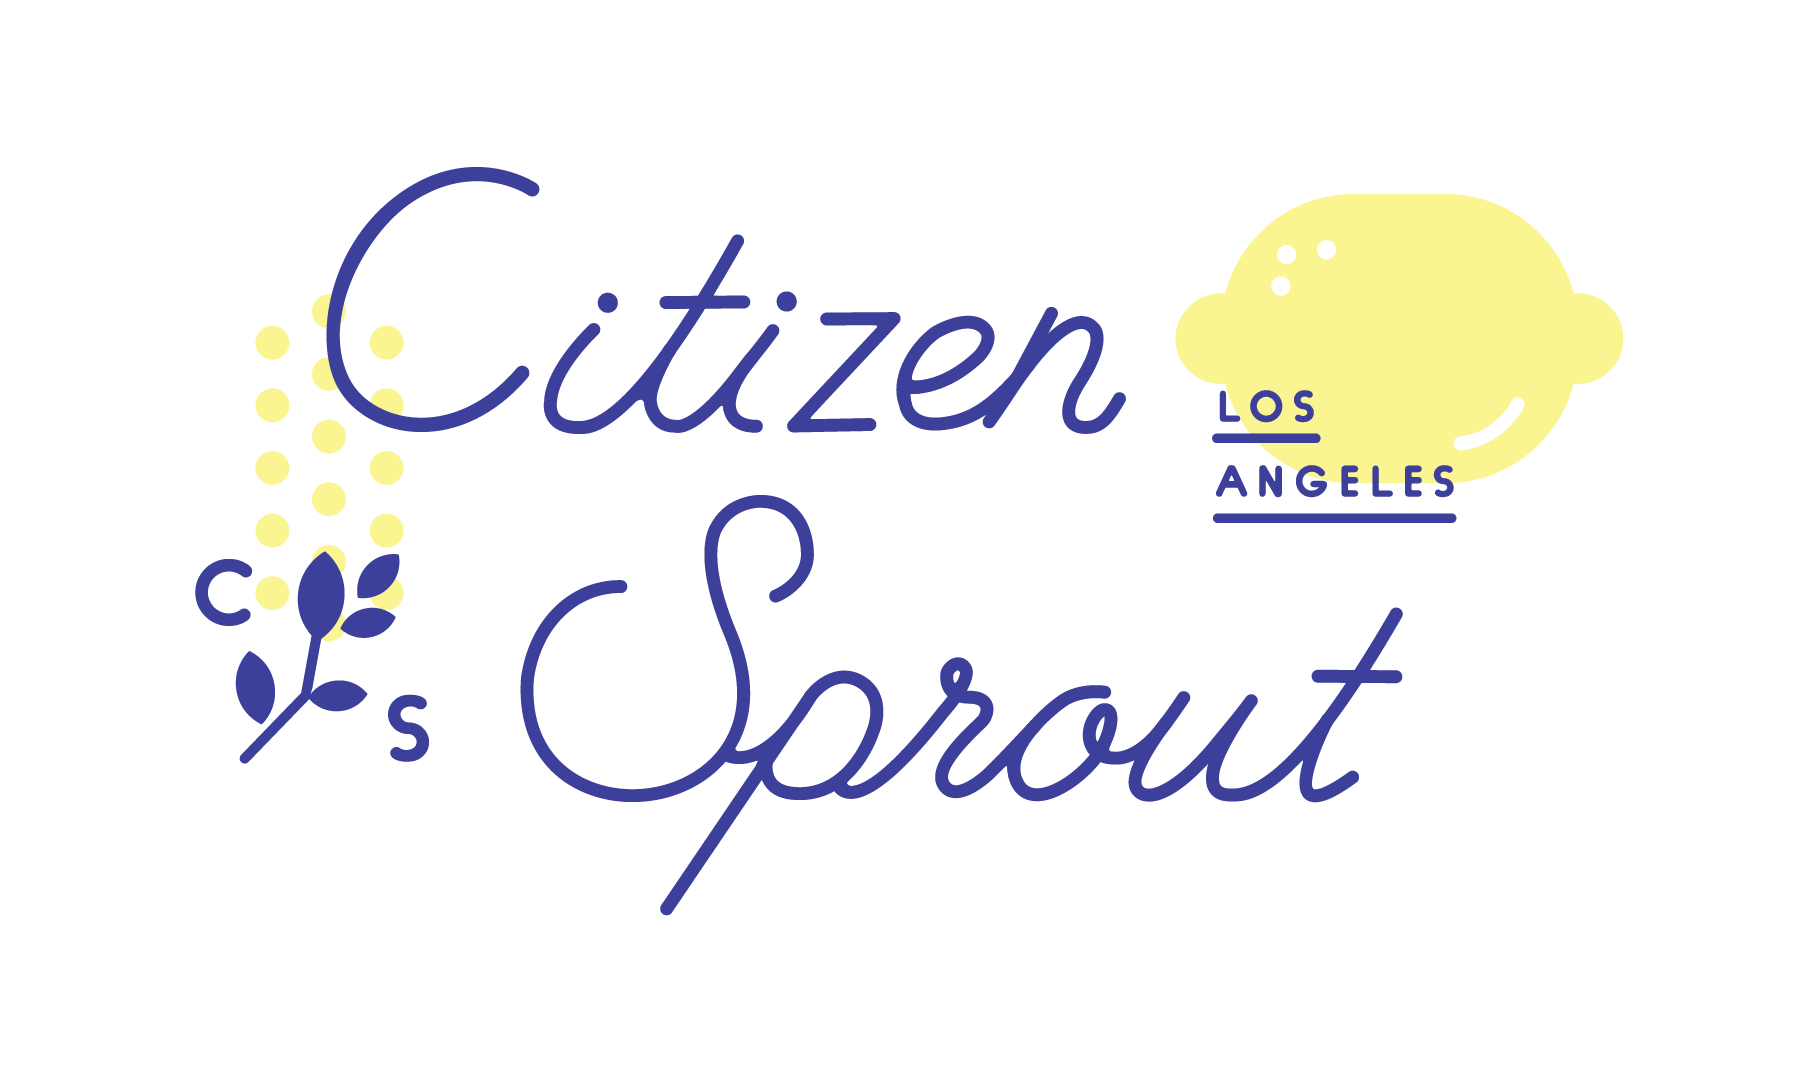 CitizenSproutLogo_thumb.png